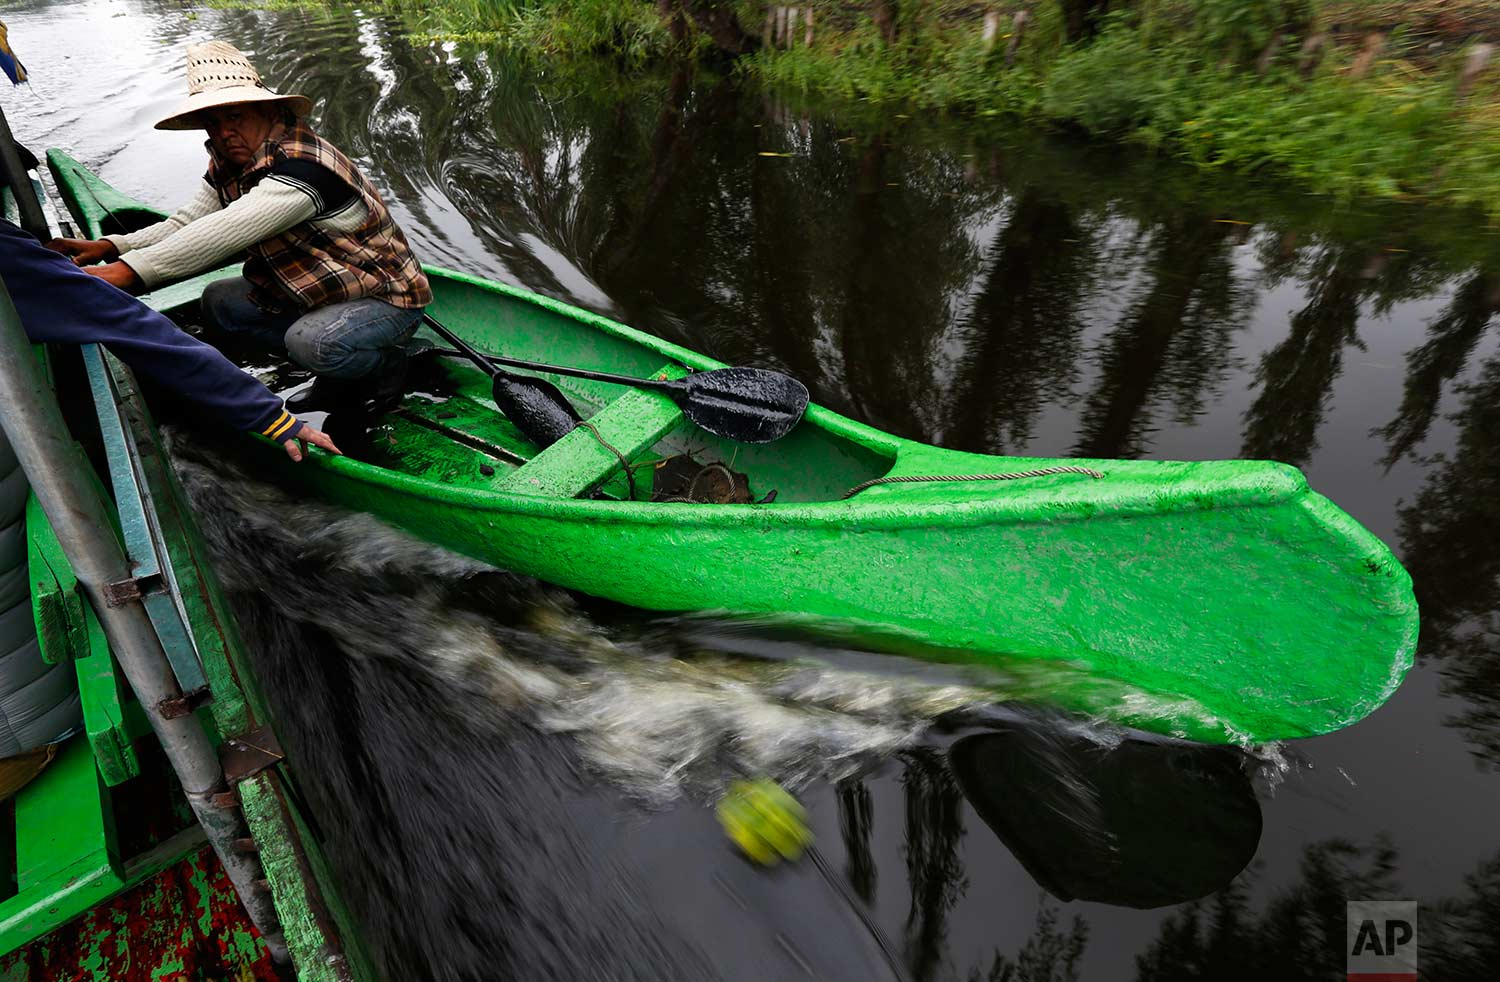 """In this July 13, 2017 photo, a farmer takes advantage of a motorized boat to move faster along the channels of Xochimilco to his floating farm known as a """"chinampa"""" in Mexico City. (AP Photo/Marco Ugarte)"""